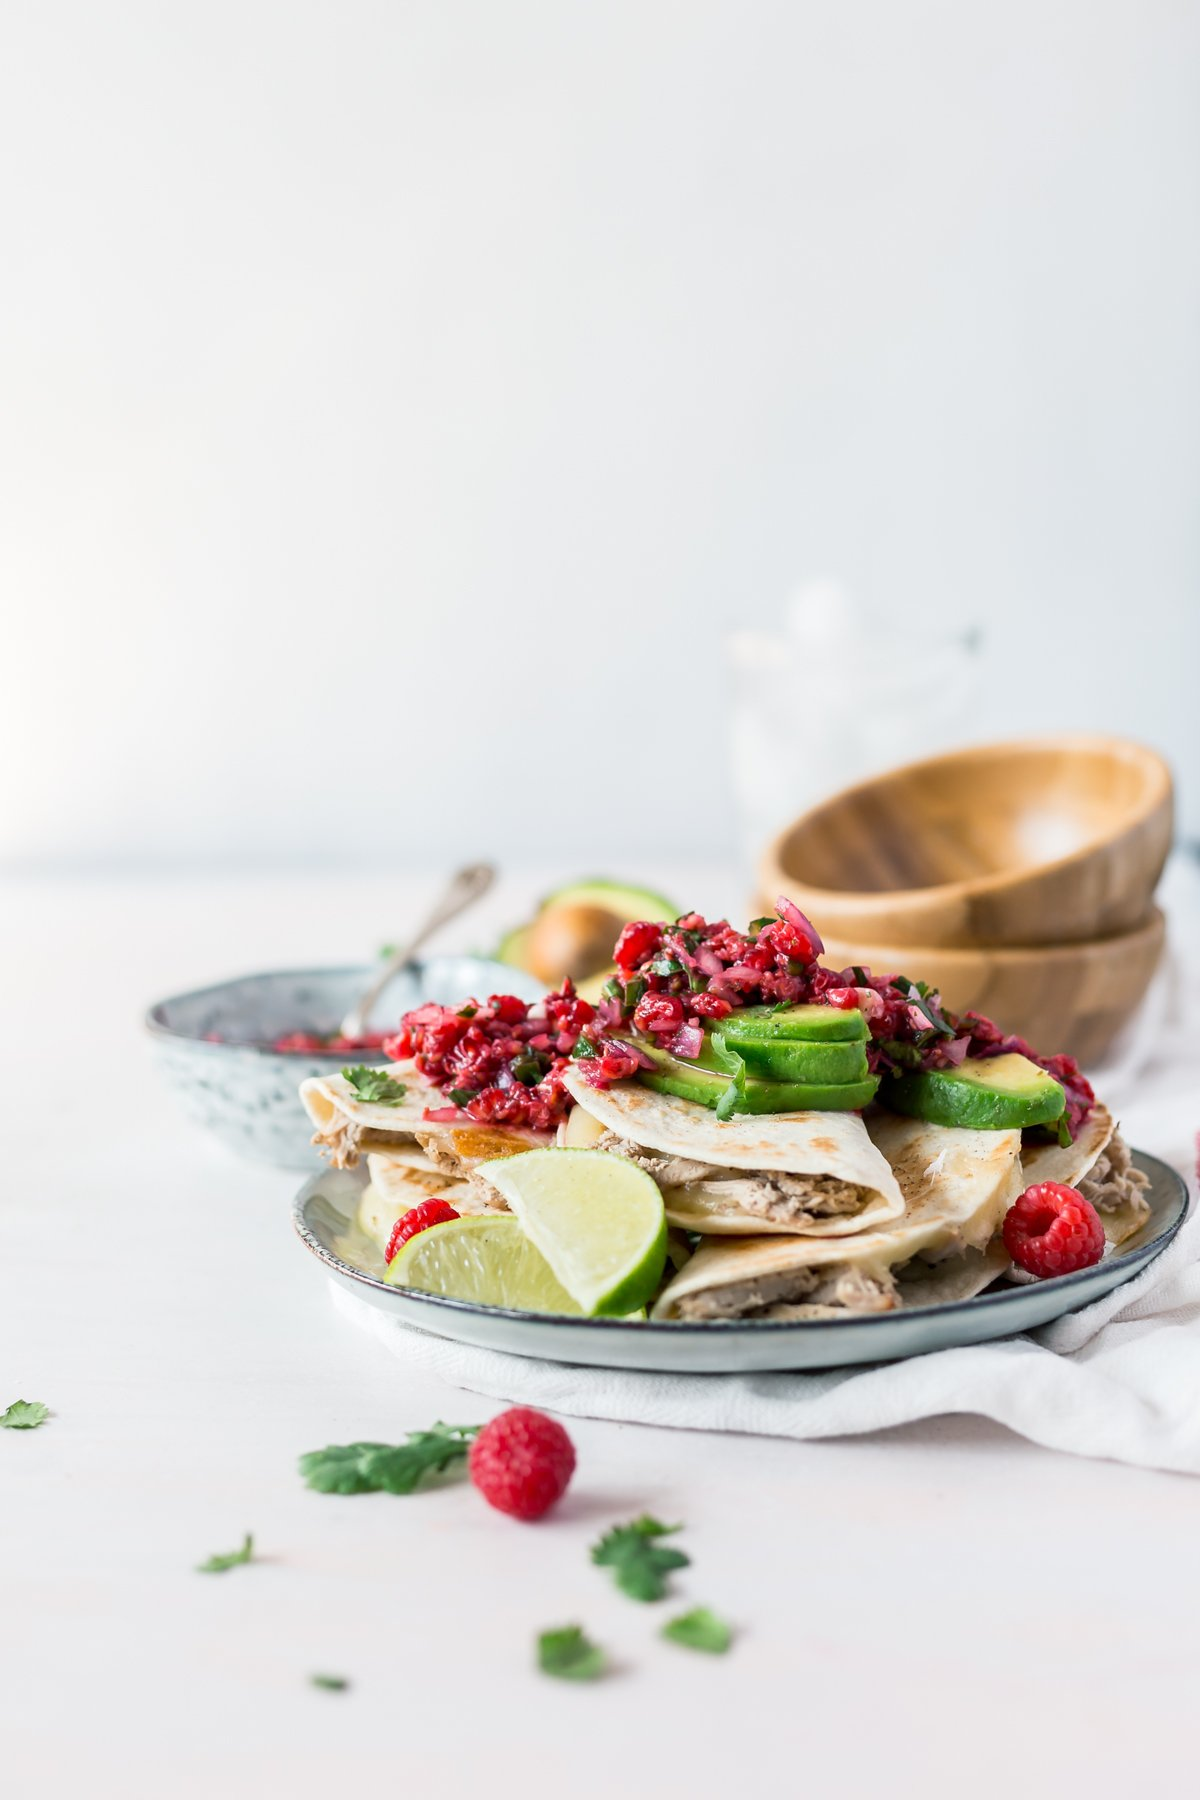 In terms of easy Mexican recipes, these quick and tasty pulled pork quesadilla tacos with spicy raspberry salsa are ready in 30 minutes! Dinner is served! | asimplepantry.com